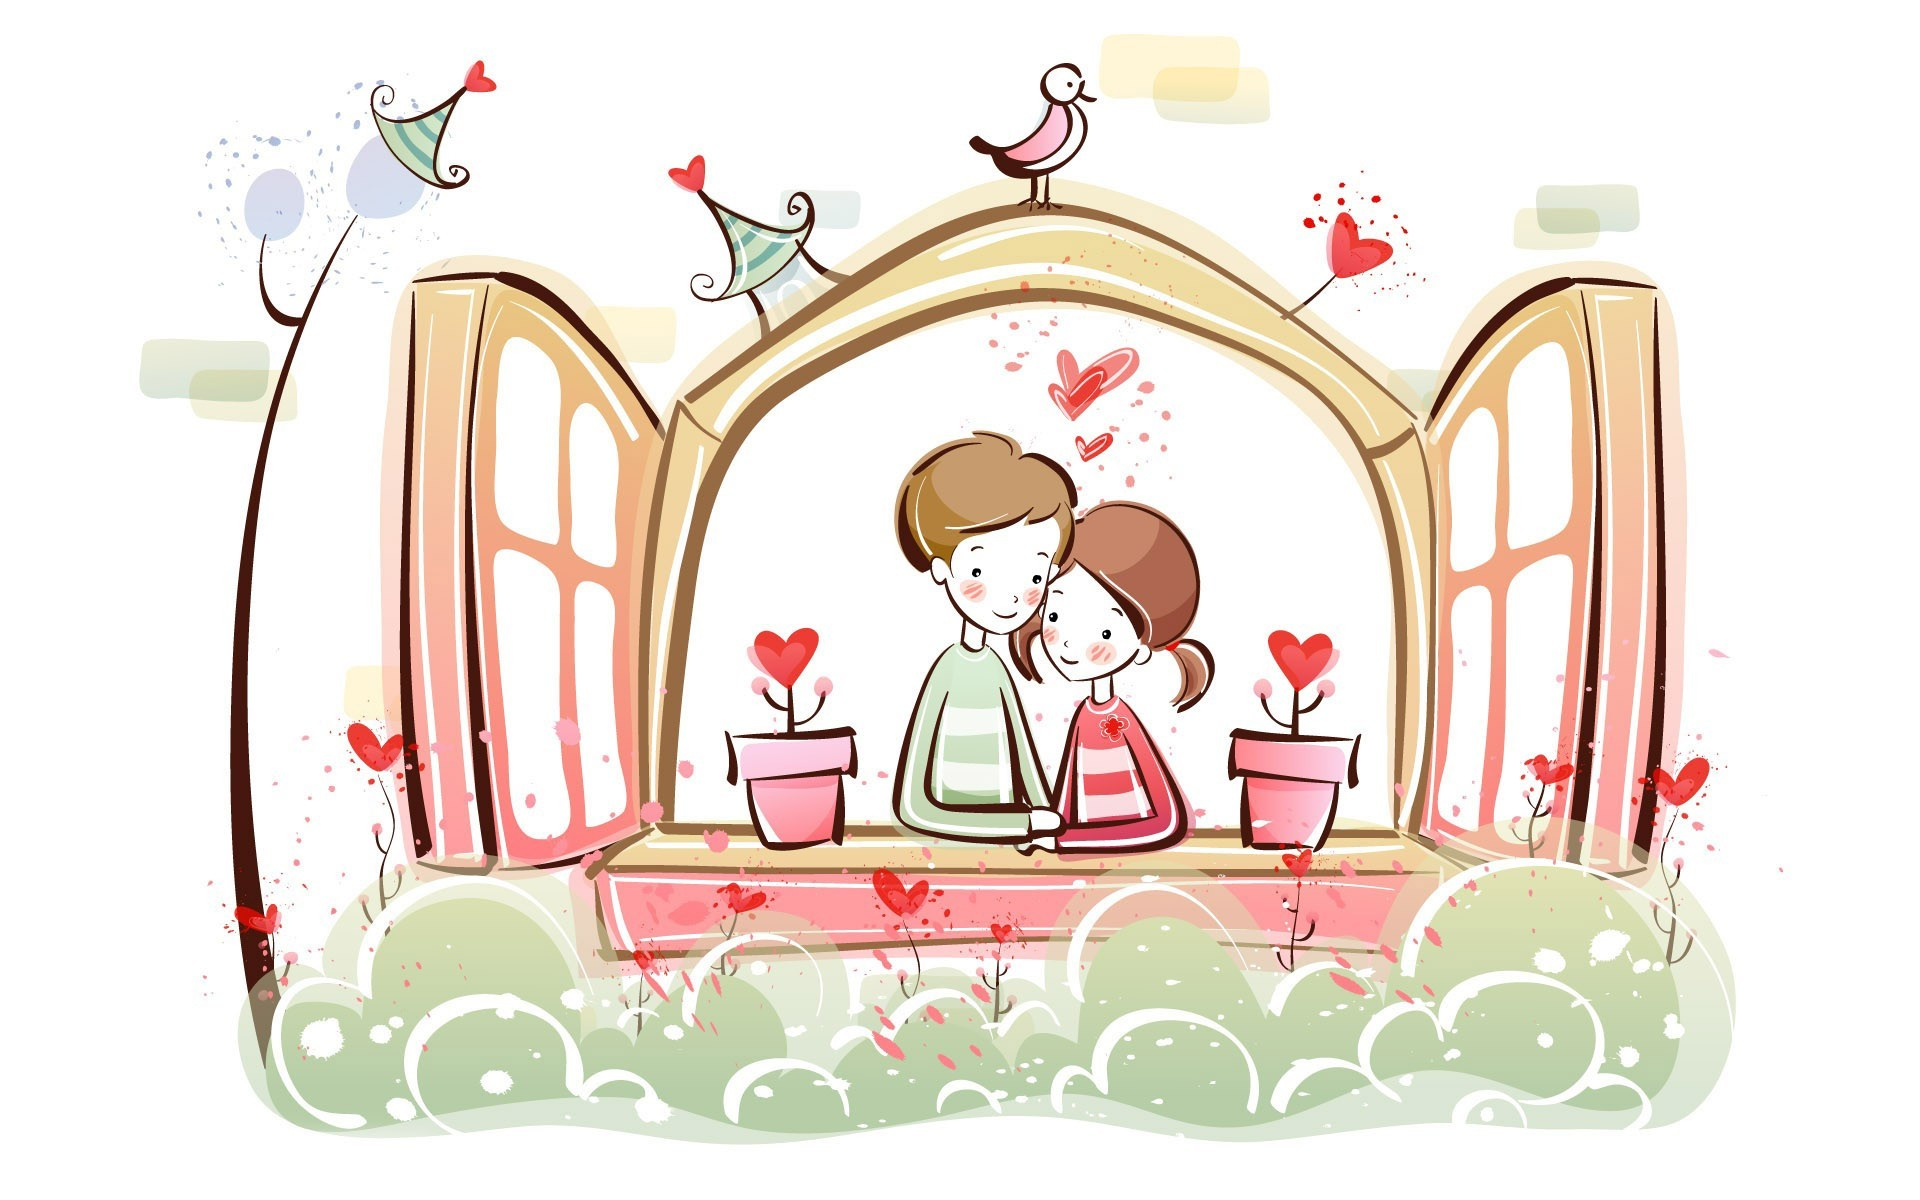 Best Love cartoon Wallpaper : cartoon Love Wallpaper - Wallpaper, High Definition, High Quality, Widescreen